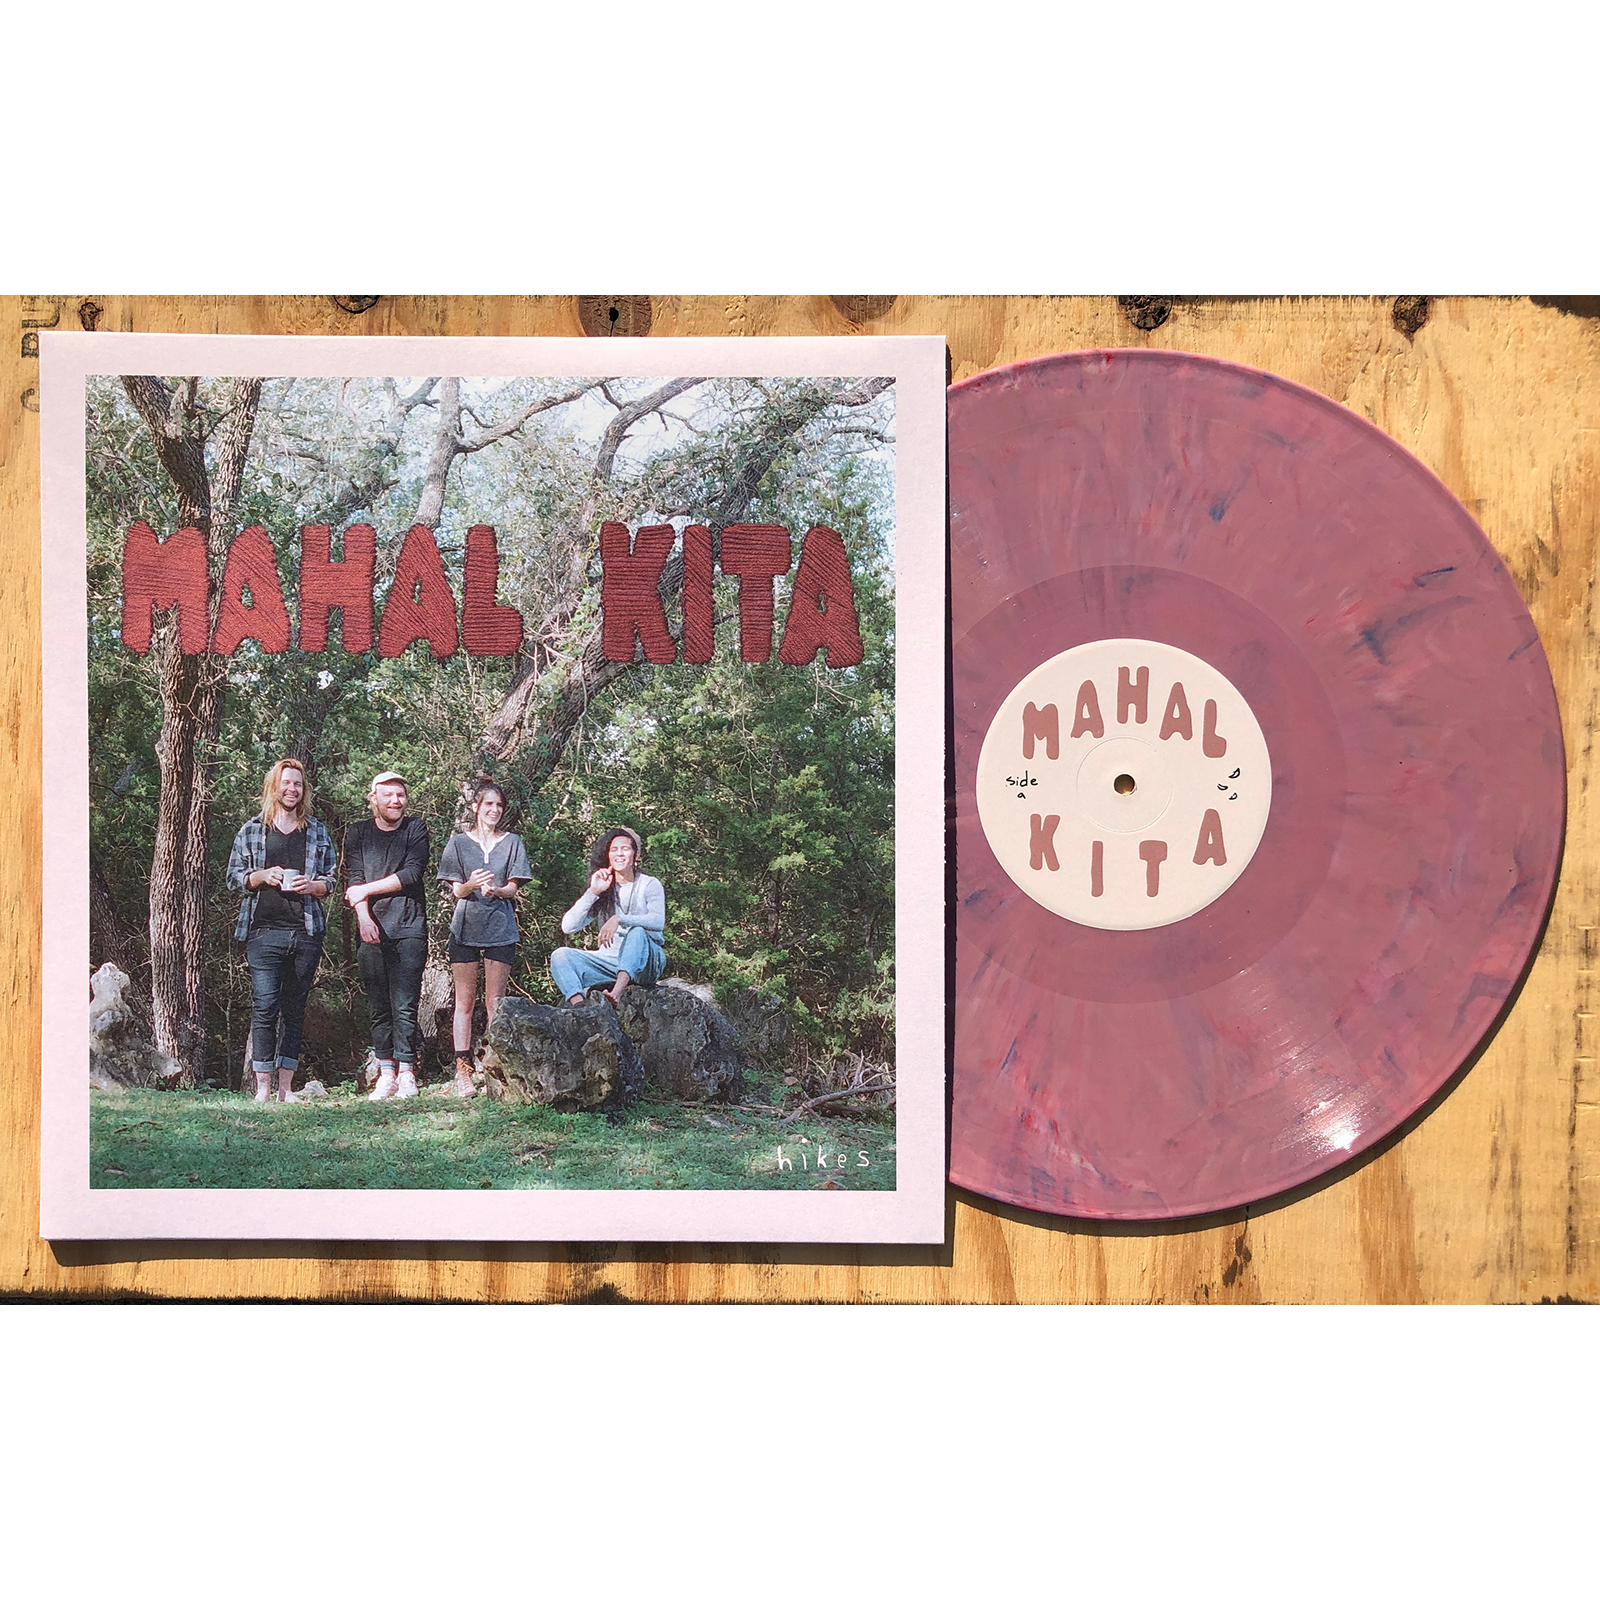 Hikes / Mahal Kita(250 Ltd LP)